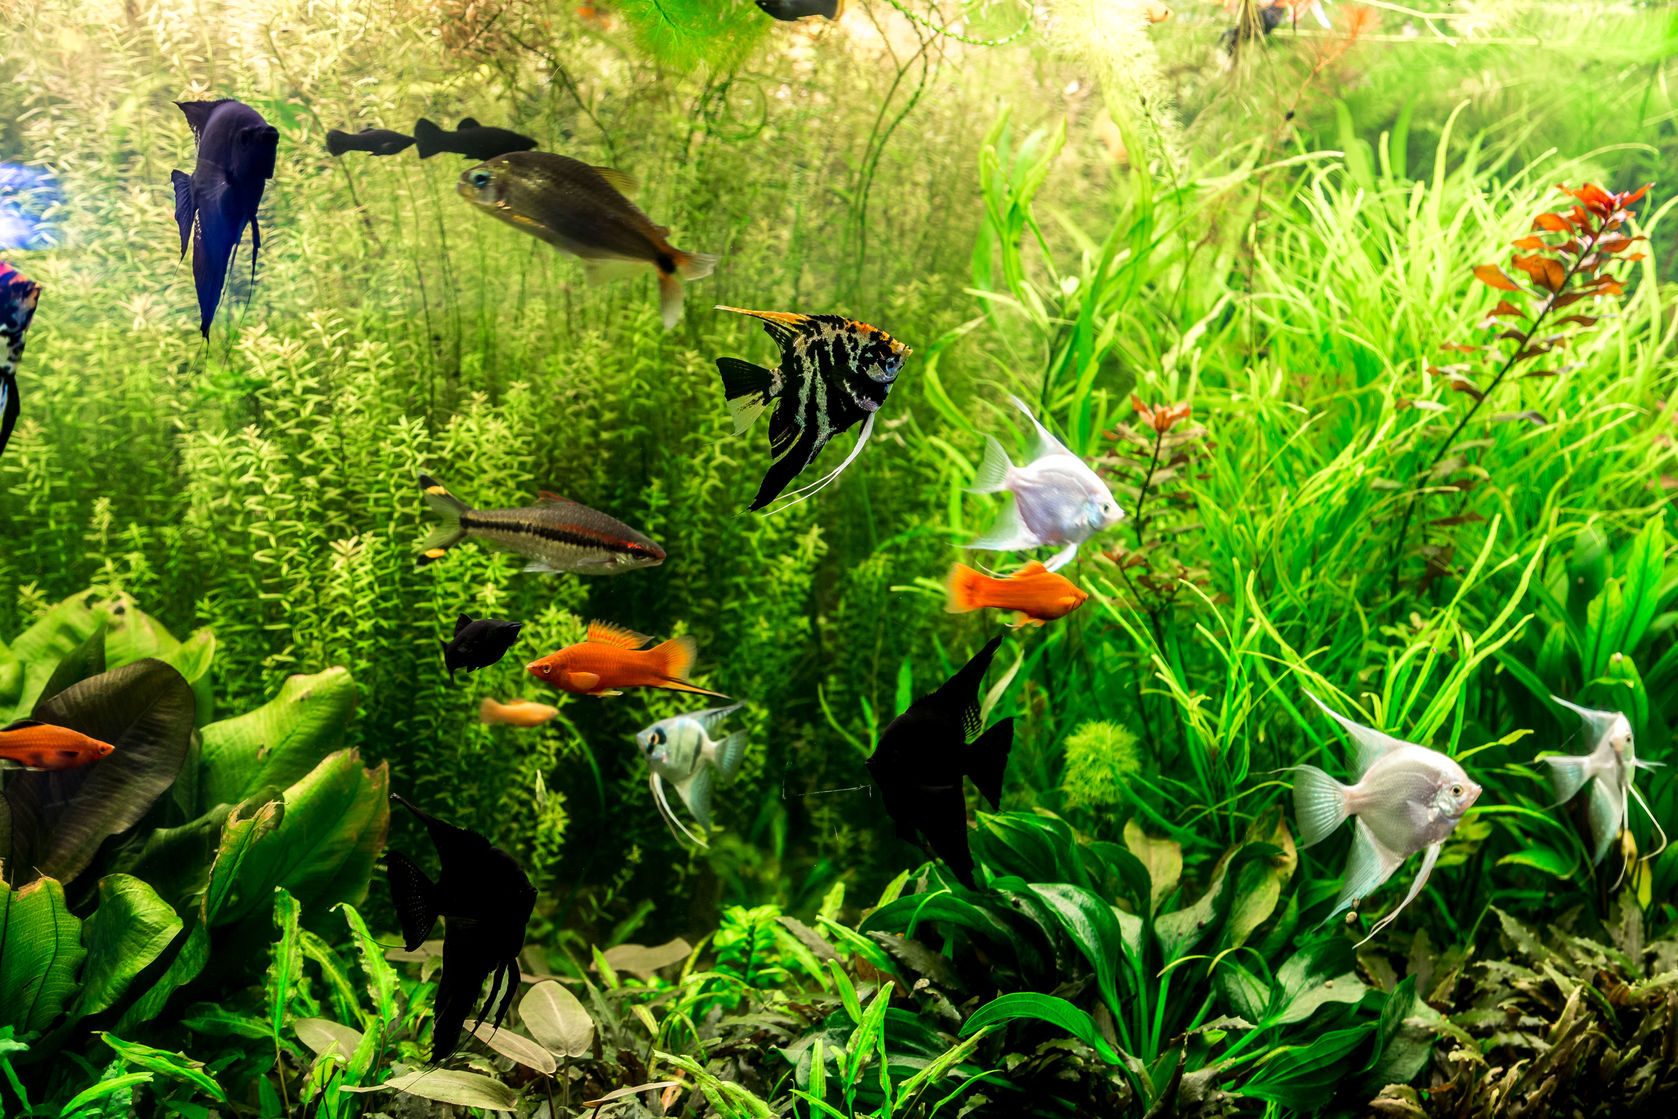 Fish aquarium guide - Fish Aquarium Guide